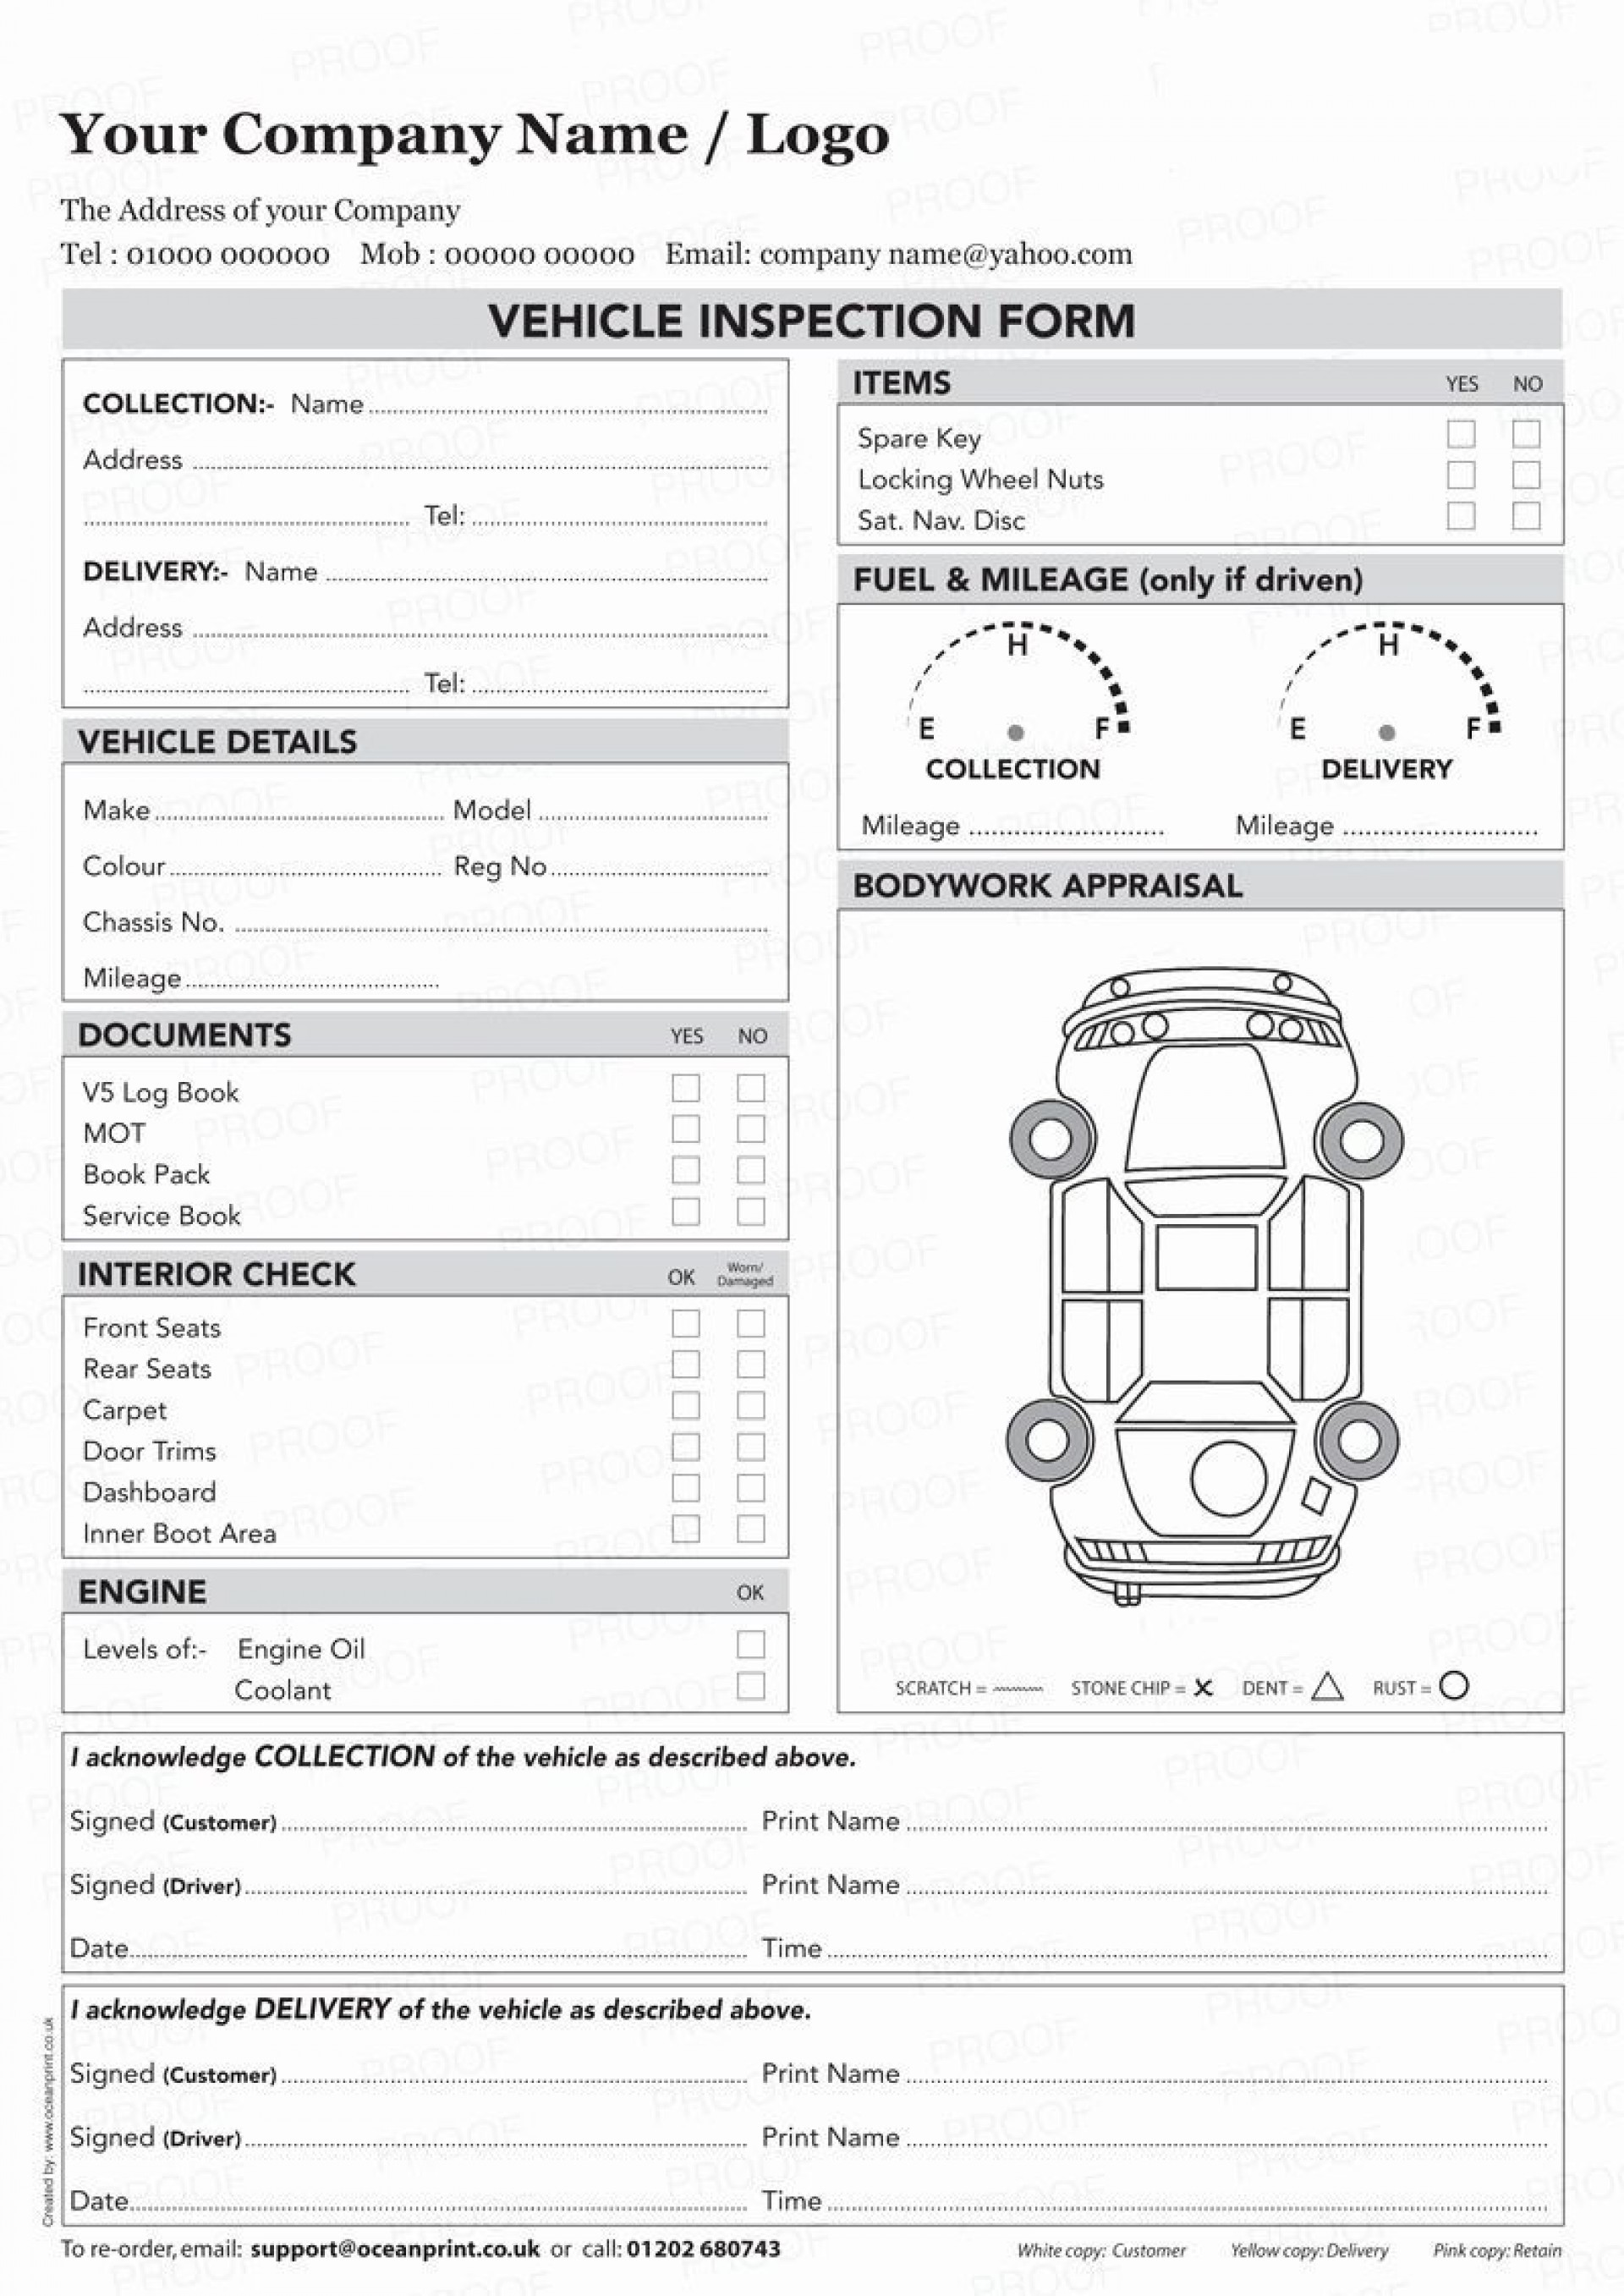 003 Awesome Vehicle Inspection Form Template Sample  Printable Pdf Word1920